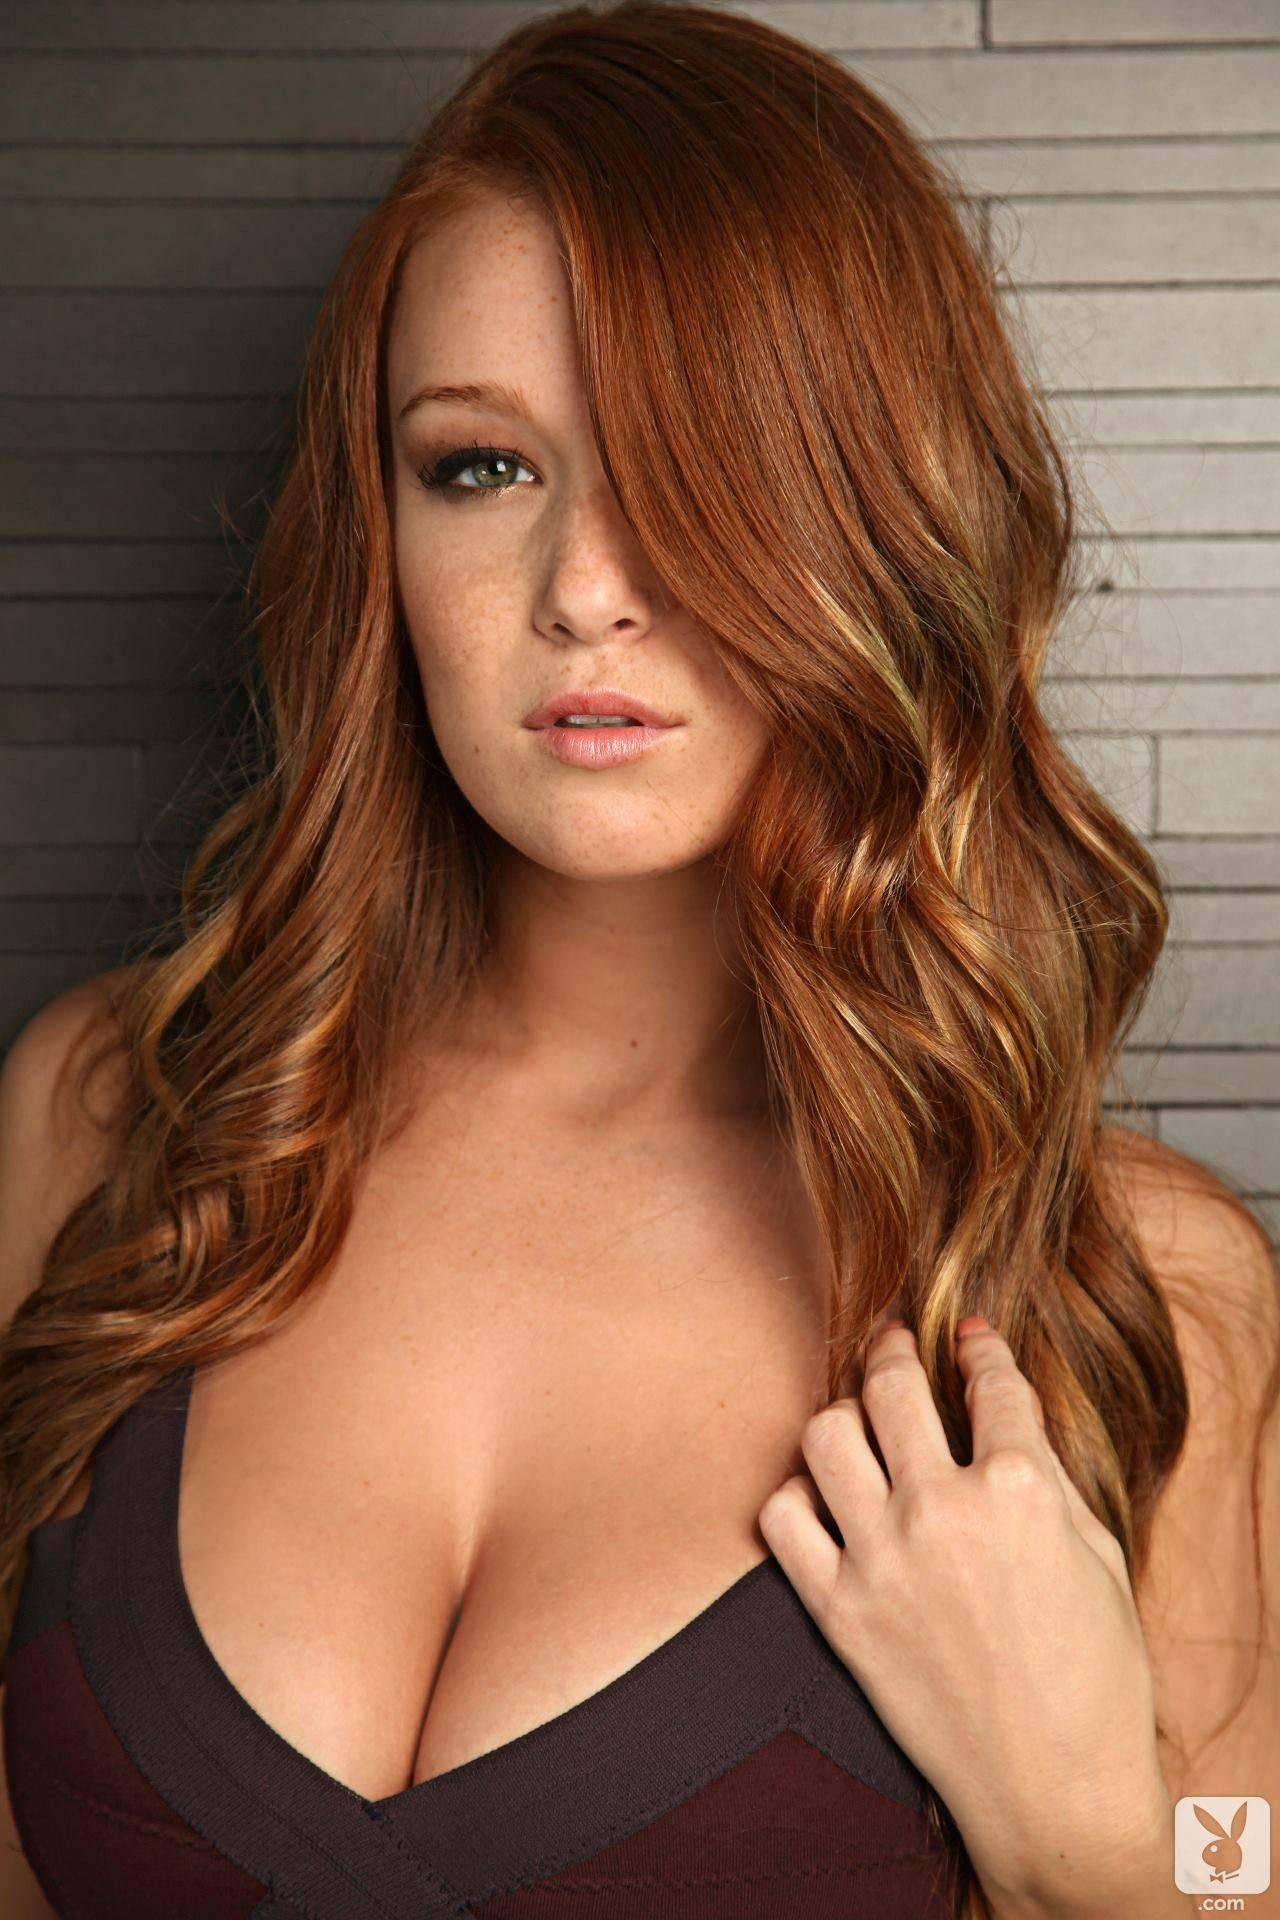 Hacked Elle Alexandra and Leanna Decker nudes (68 foto and video), Tits, Paparazzi, Feet, braless 2006